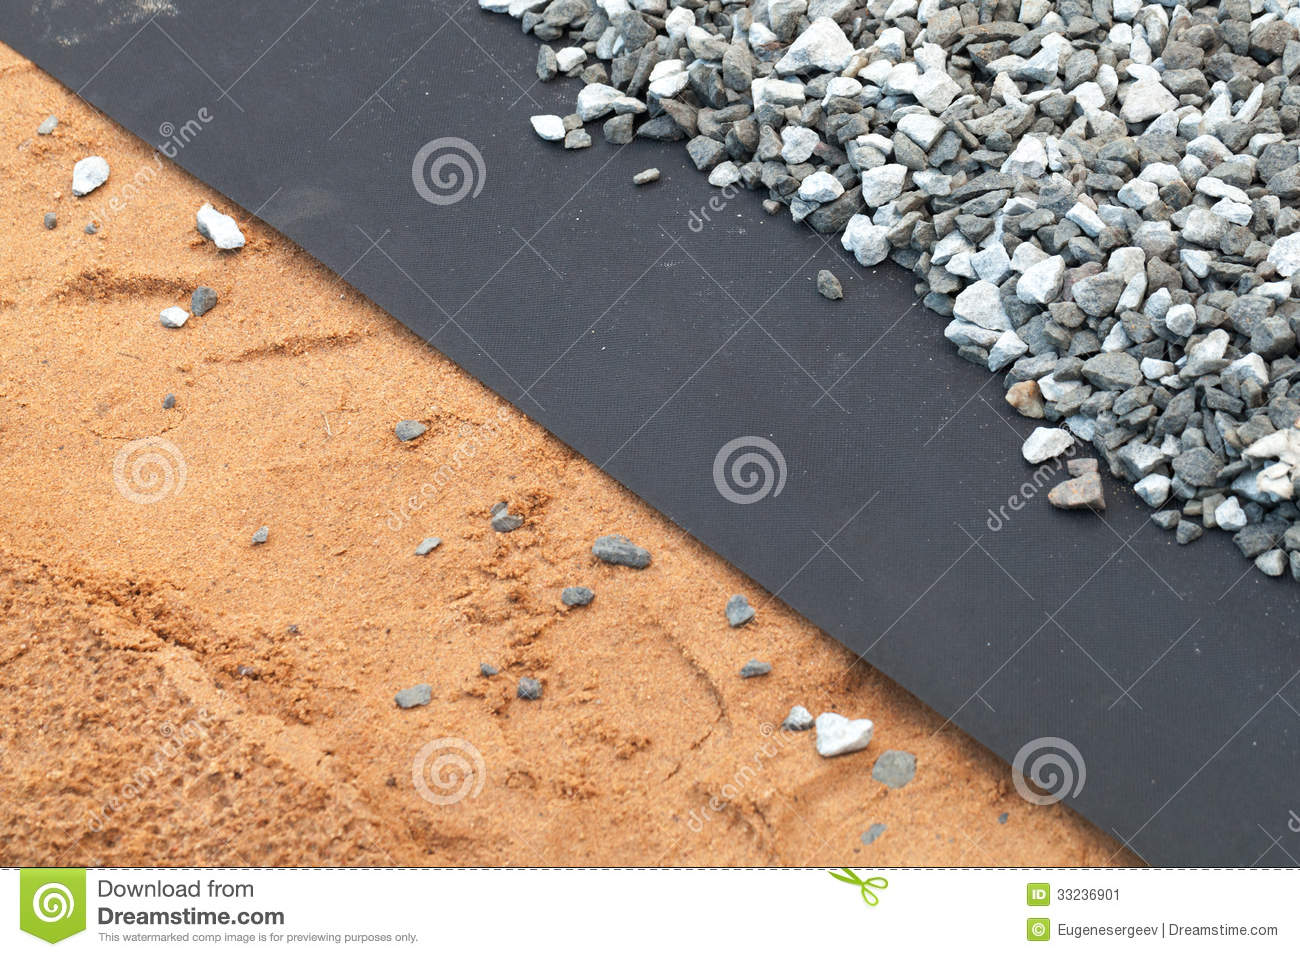 geotextile layer between gray gravel and sand stock image image 33236901. Black Bedroom Furniture Sets. Home Design Ideas